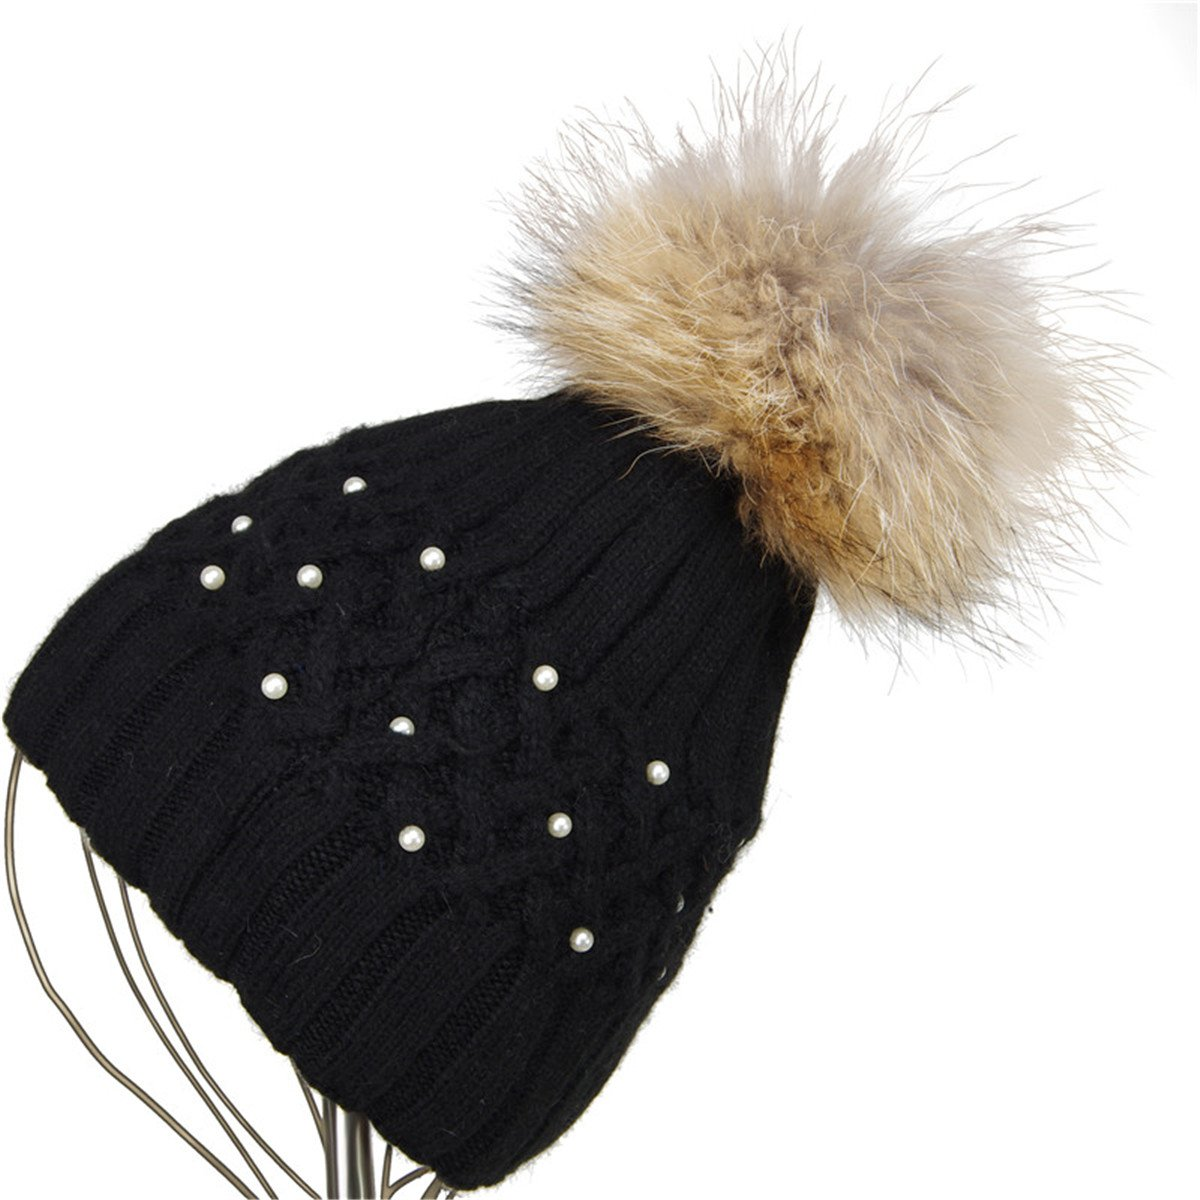 GESDY Women Winter Warm Knitting Ski Cap Beanie Pearl Rabbit Fur Pom Bobble  Hat at Amazon Women s Clothing store  638dae1c6e5